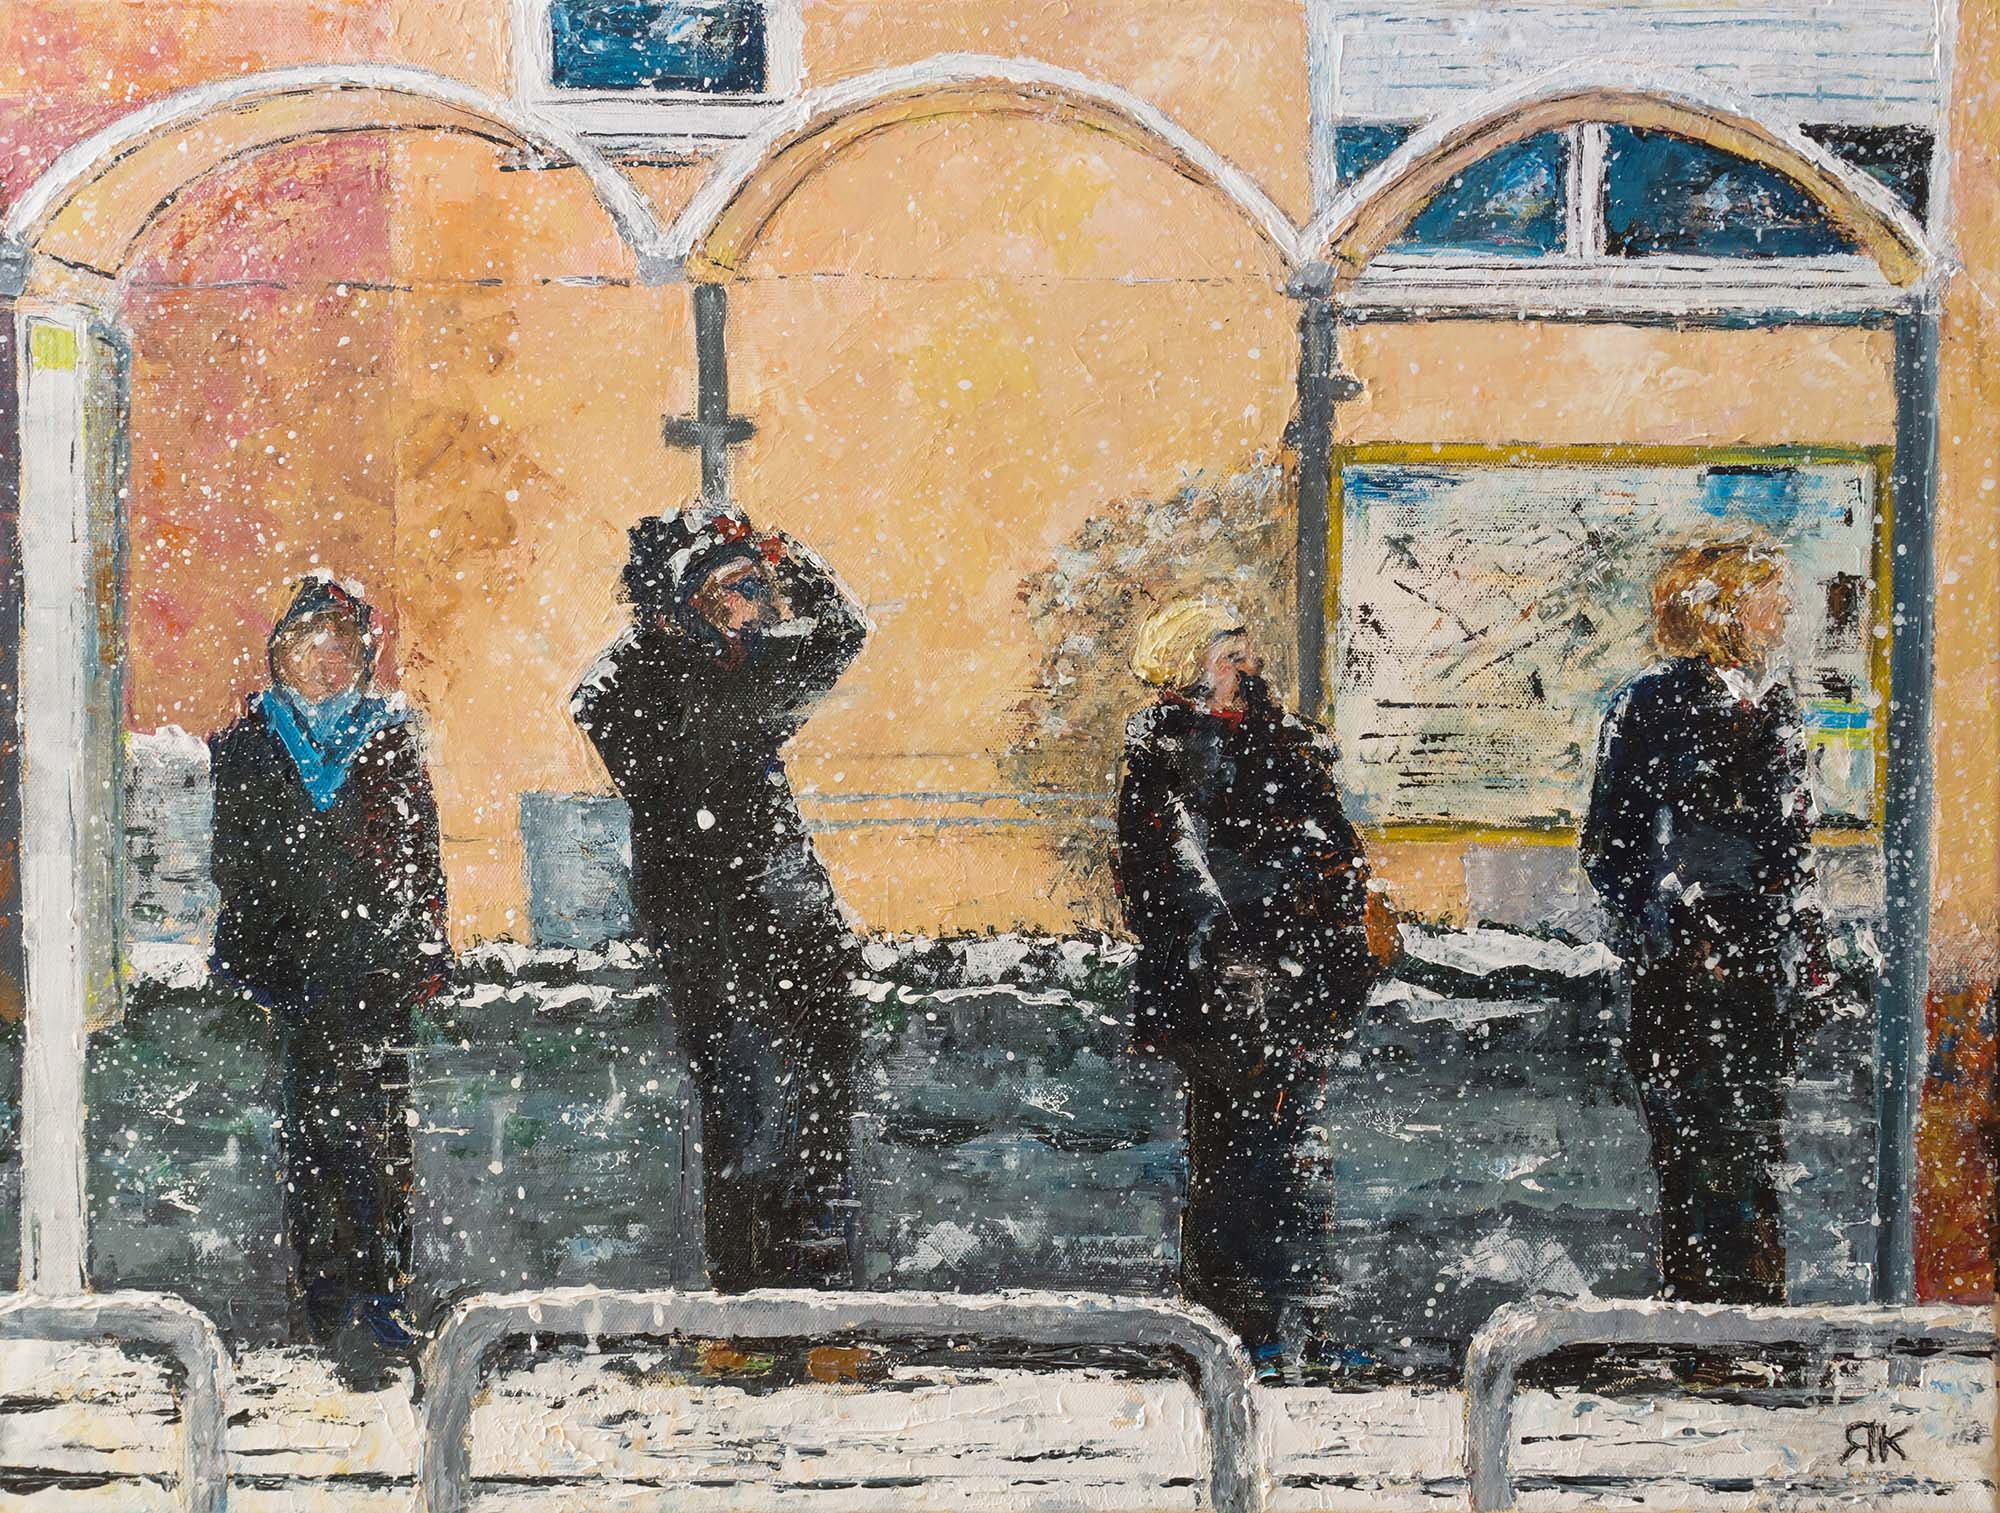 Four people waiting at a bus station in the snow by Ria Kieboom